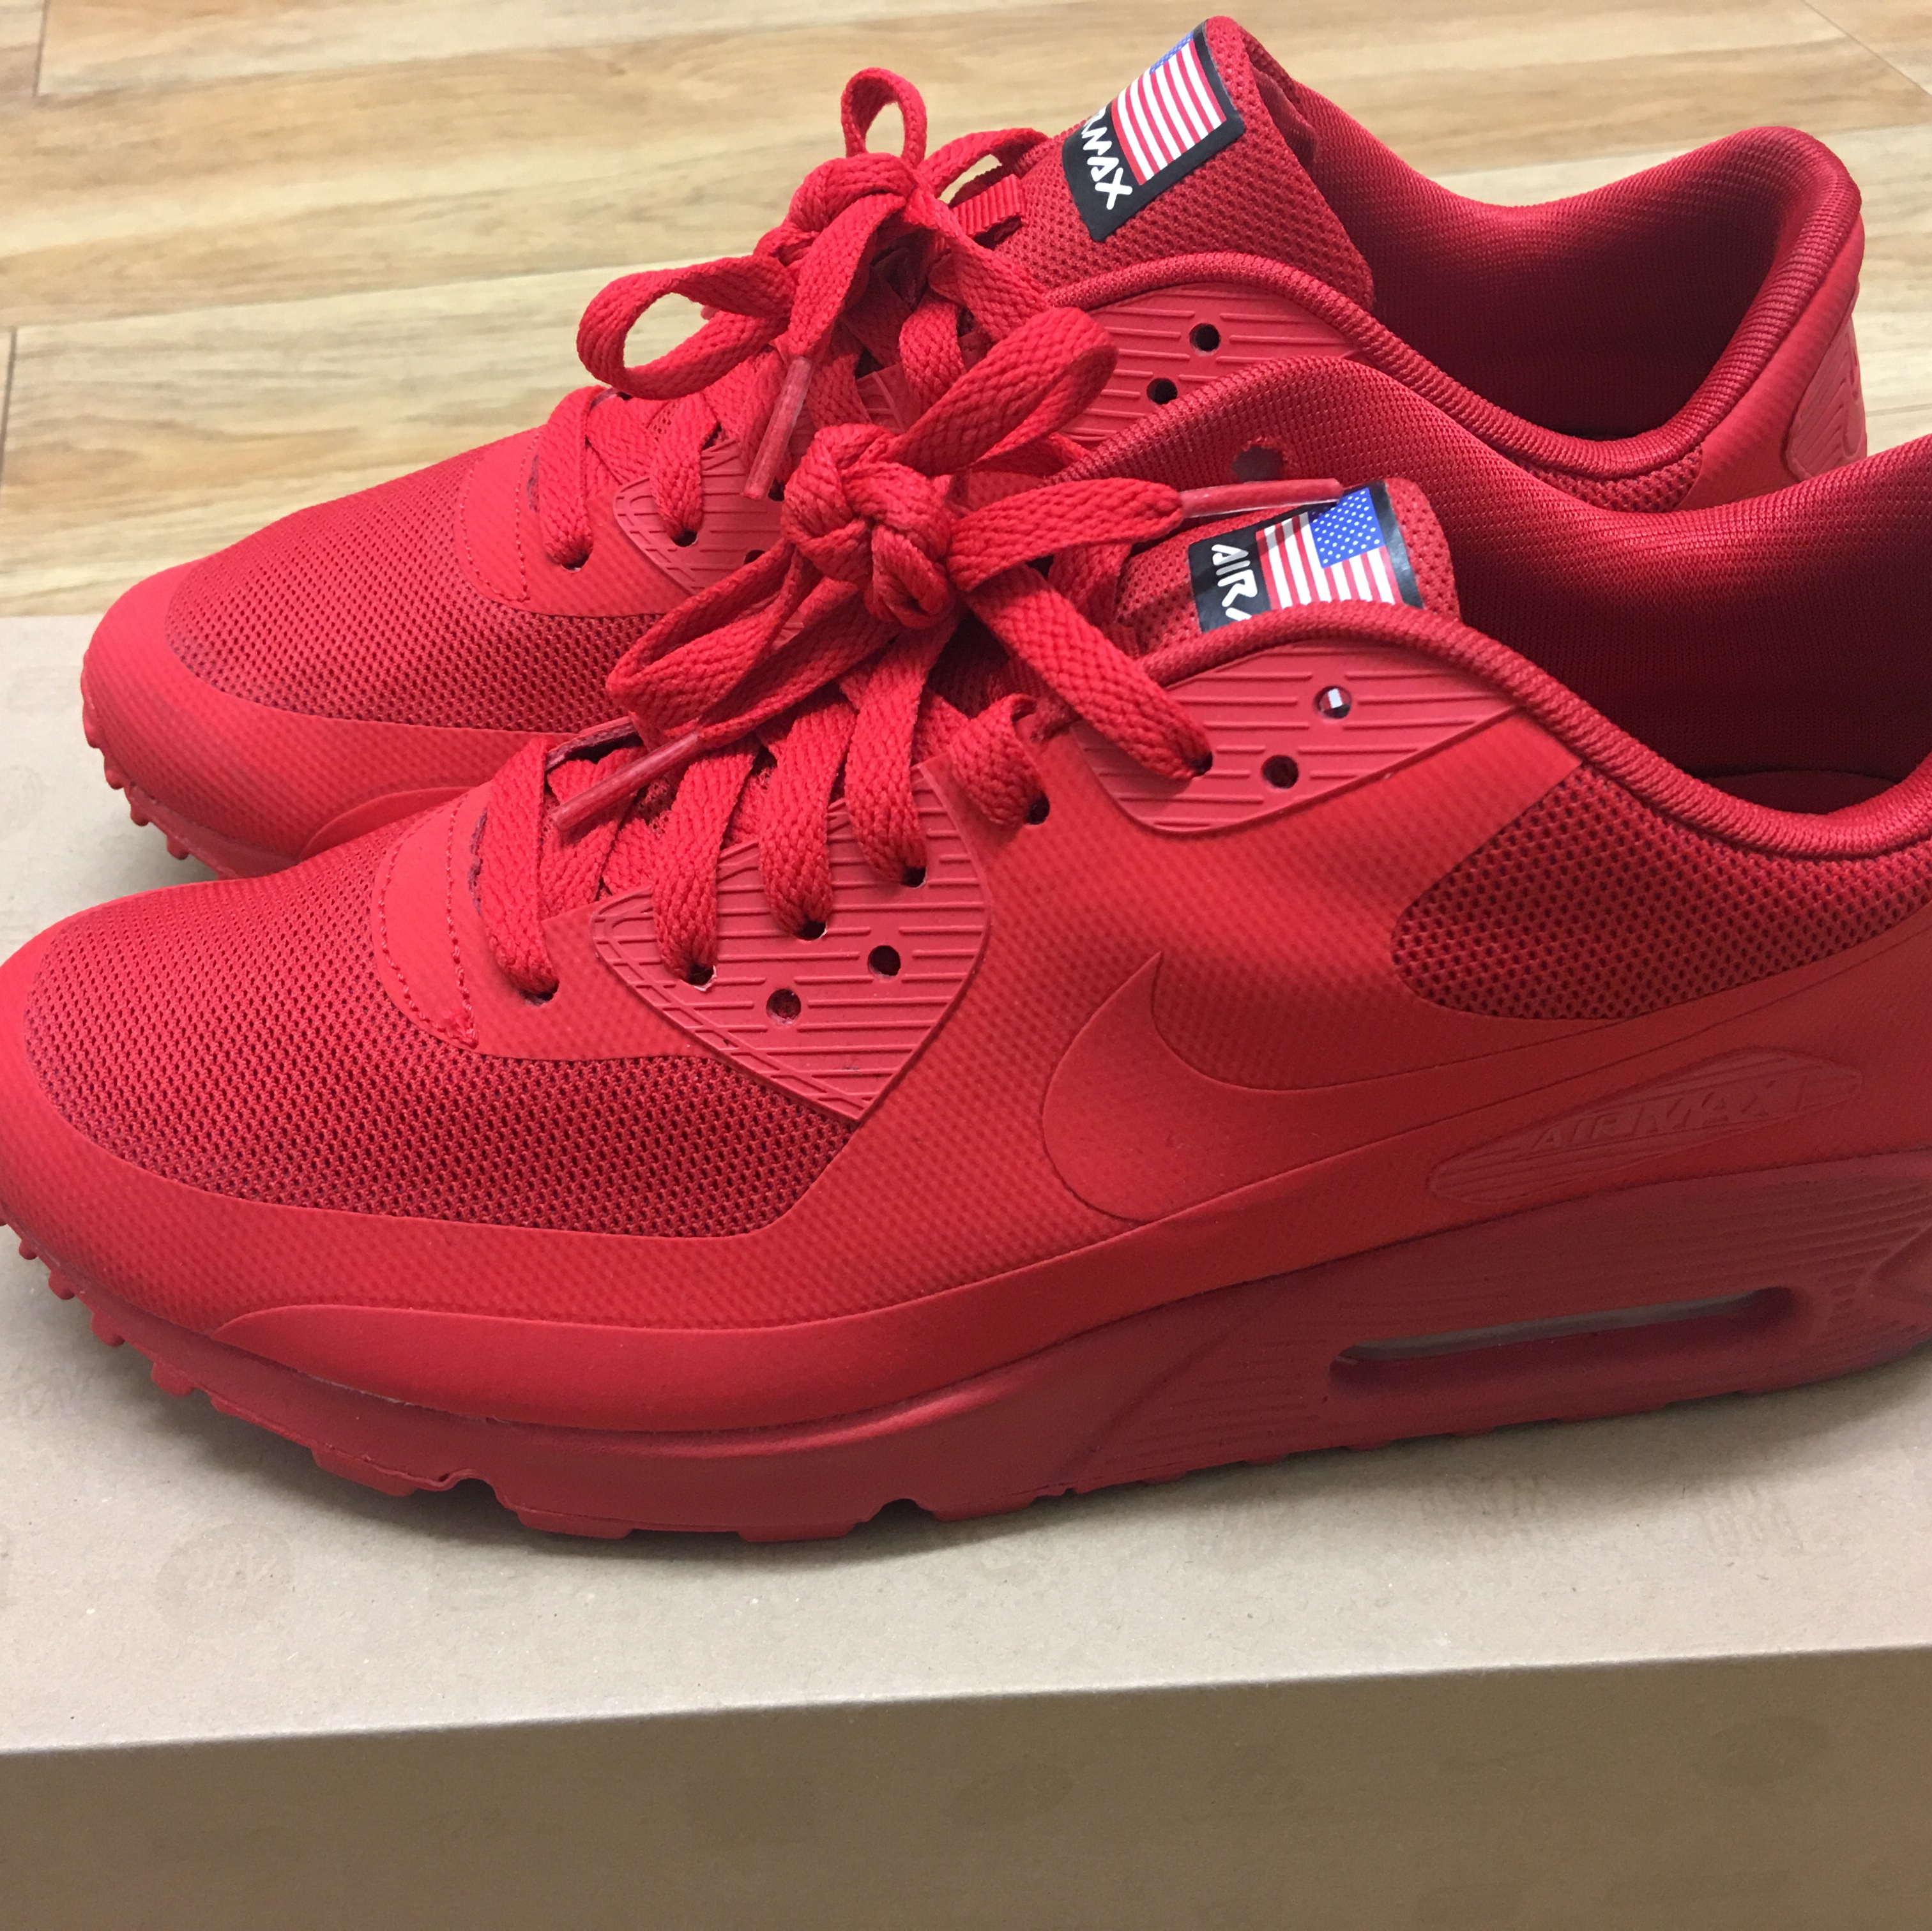 Nike Air Max 90 Hyperfuse 'Independence Day' Infrared Depop